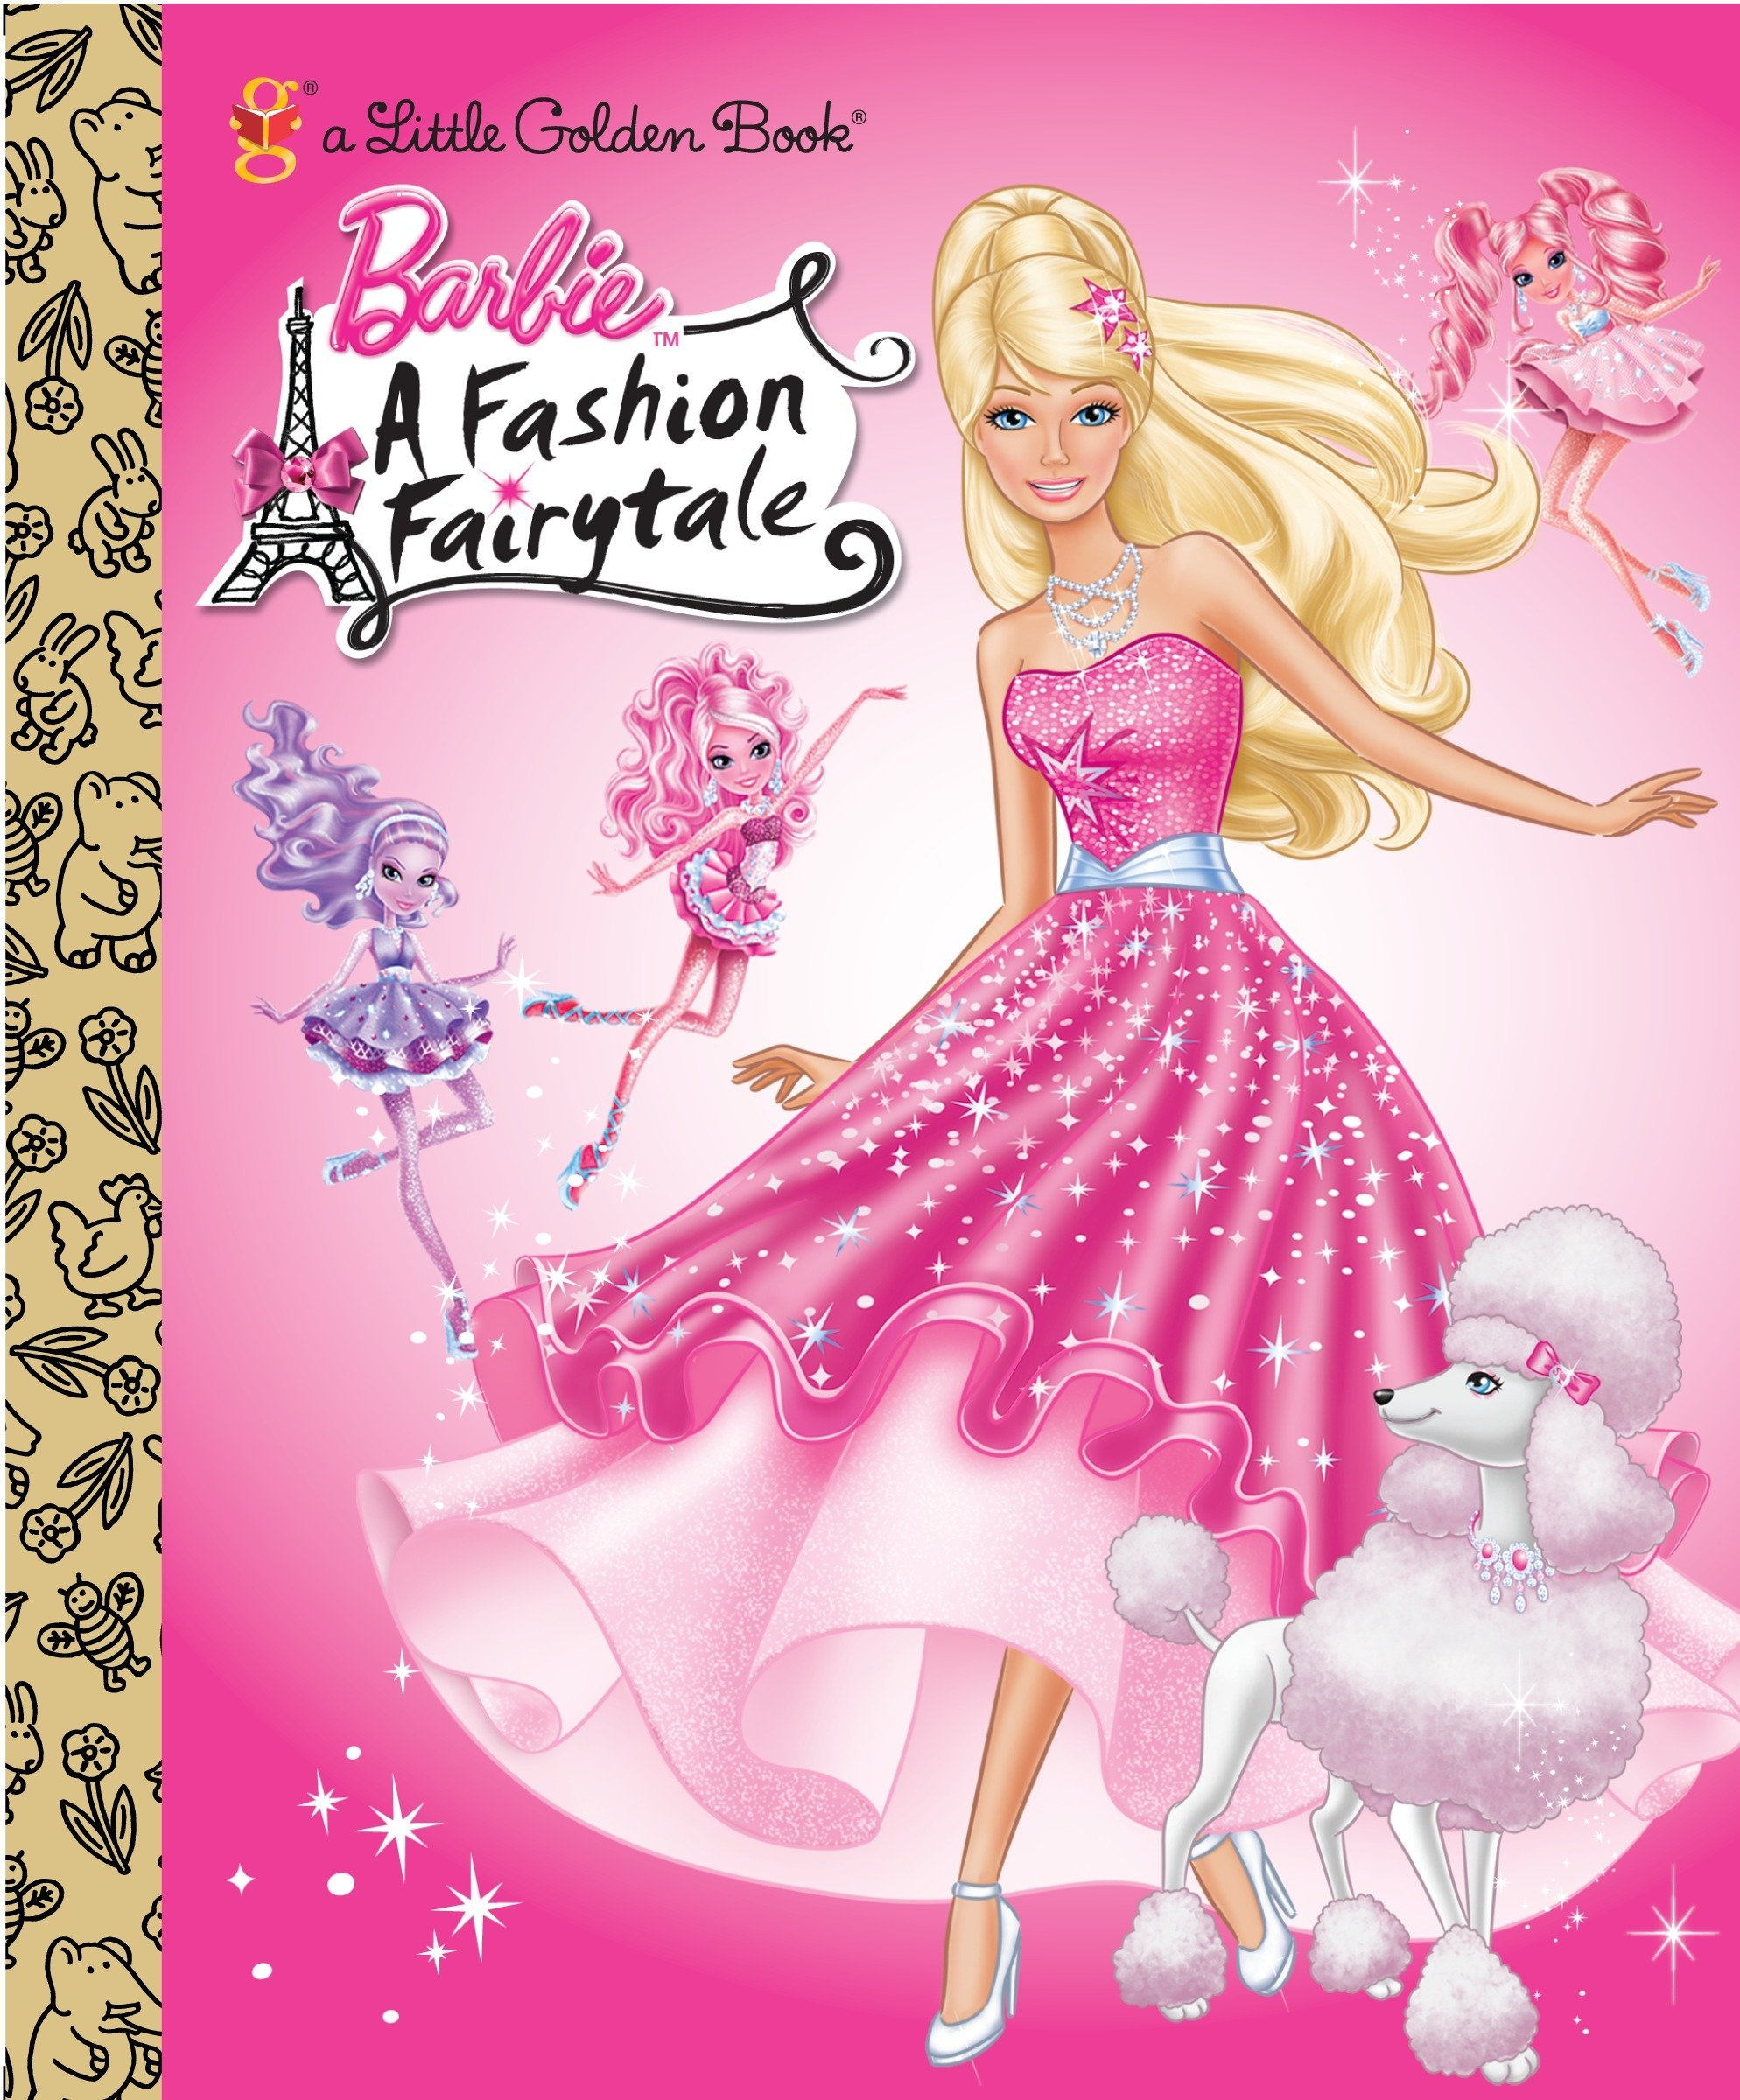 Barbie A Fashion Fairytale/Gallery